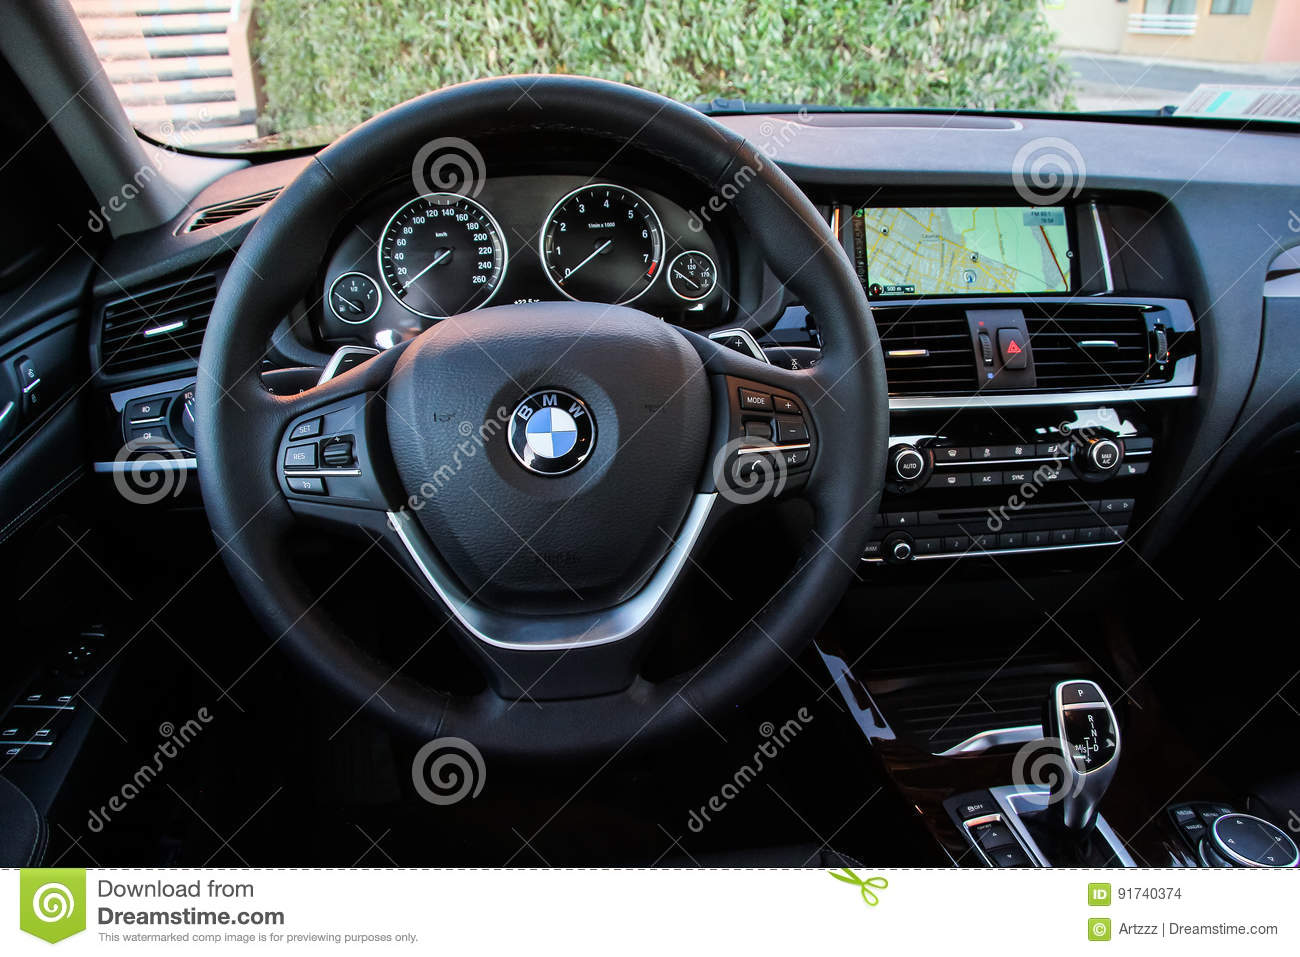 BMW F26 X4 editorial stock image  Image of idrive, black - 91740374